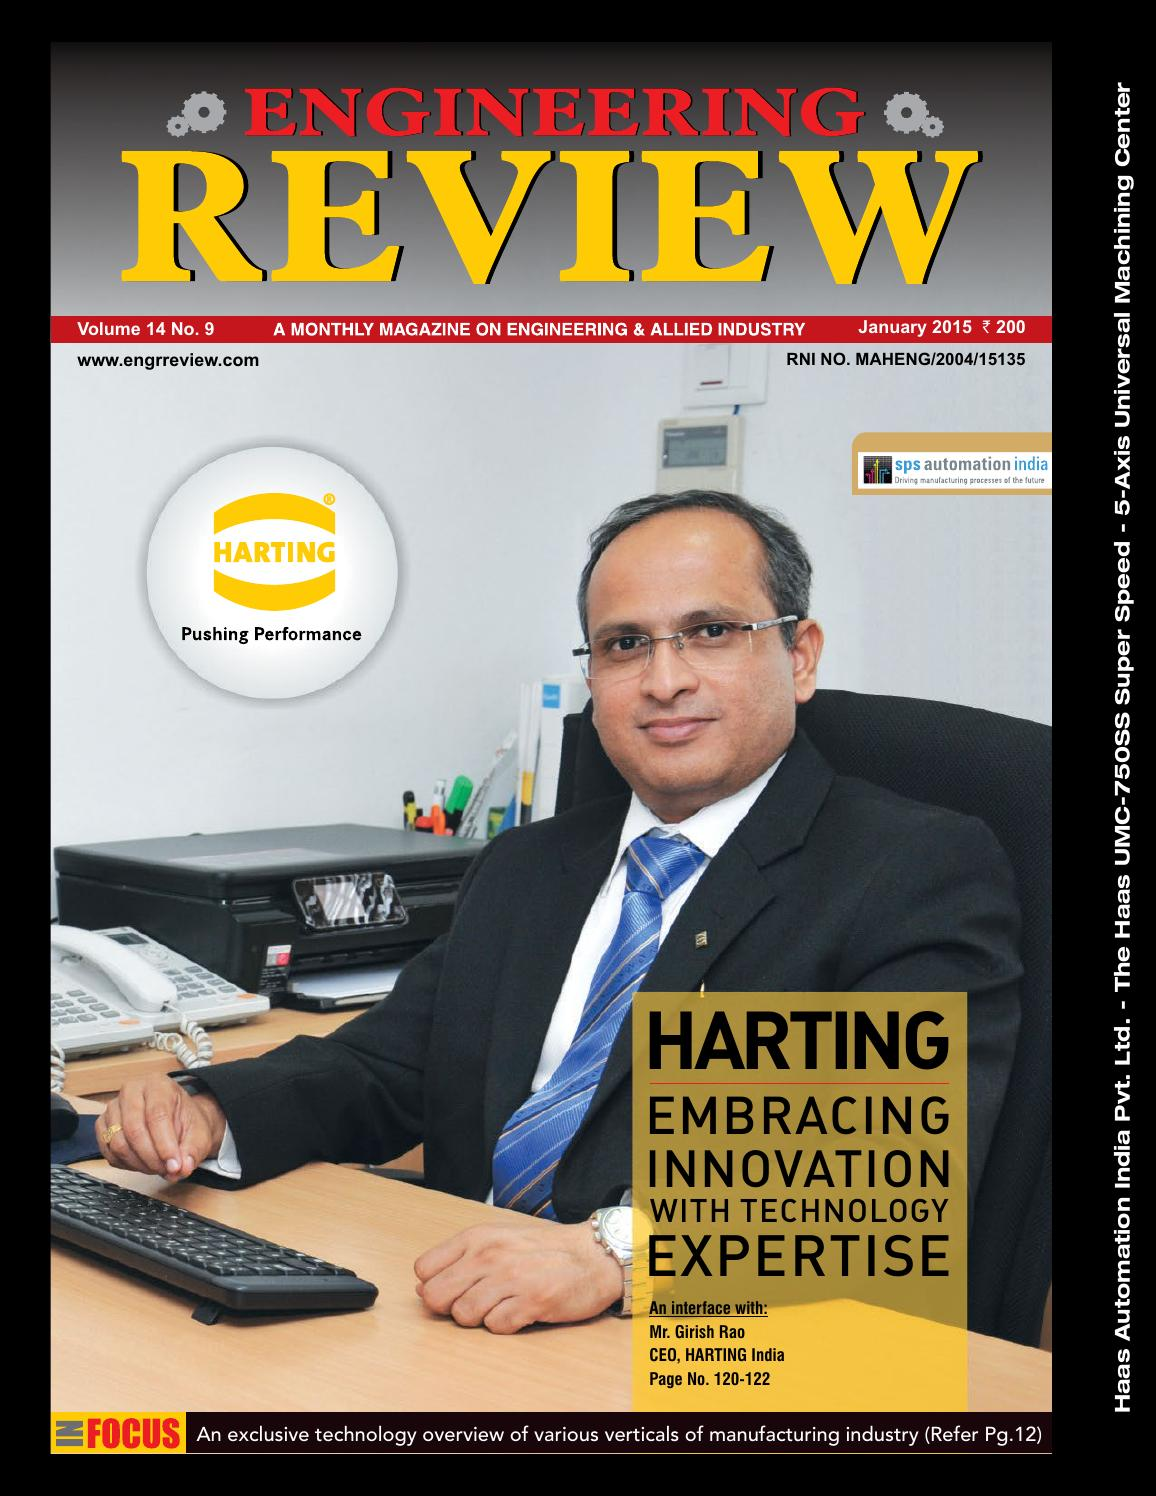 engineering review january 2015 by divya media publications pvt ltd issuu. Black Bedroom Furniture Sets. Home Design Ideas